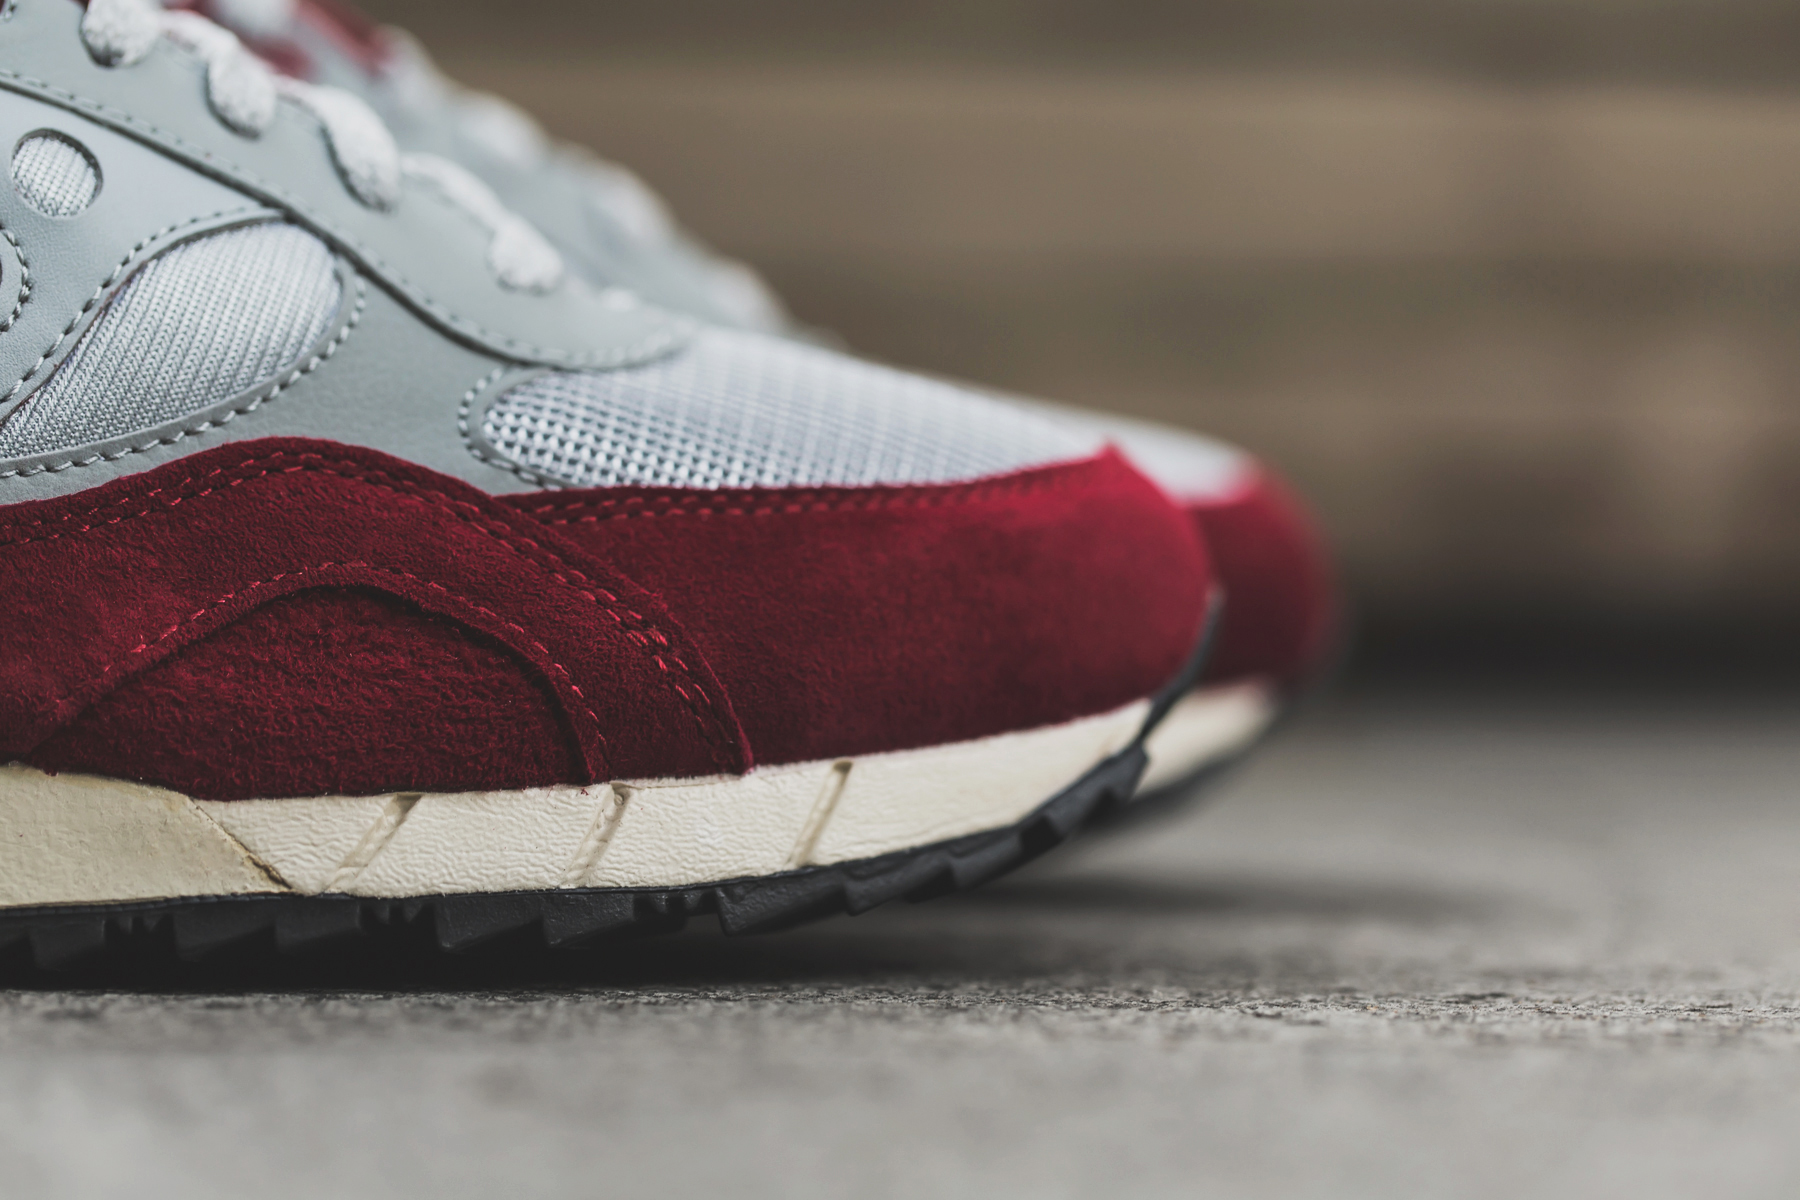 a closer look at the saucony shadow 6000 grey red